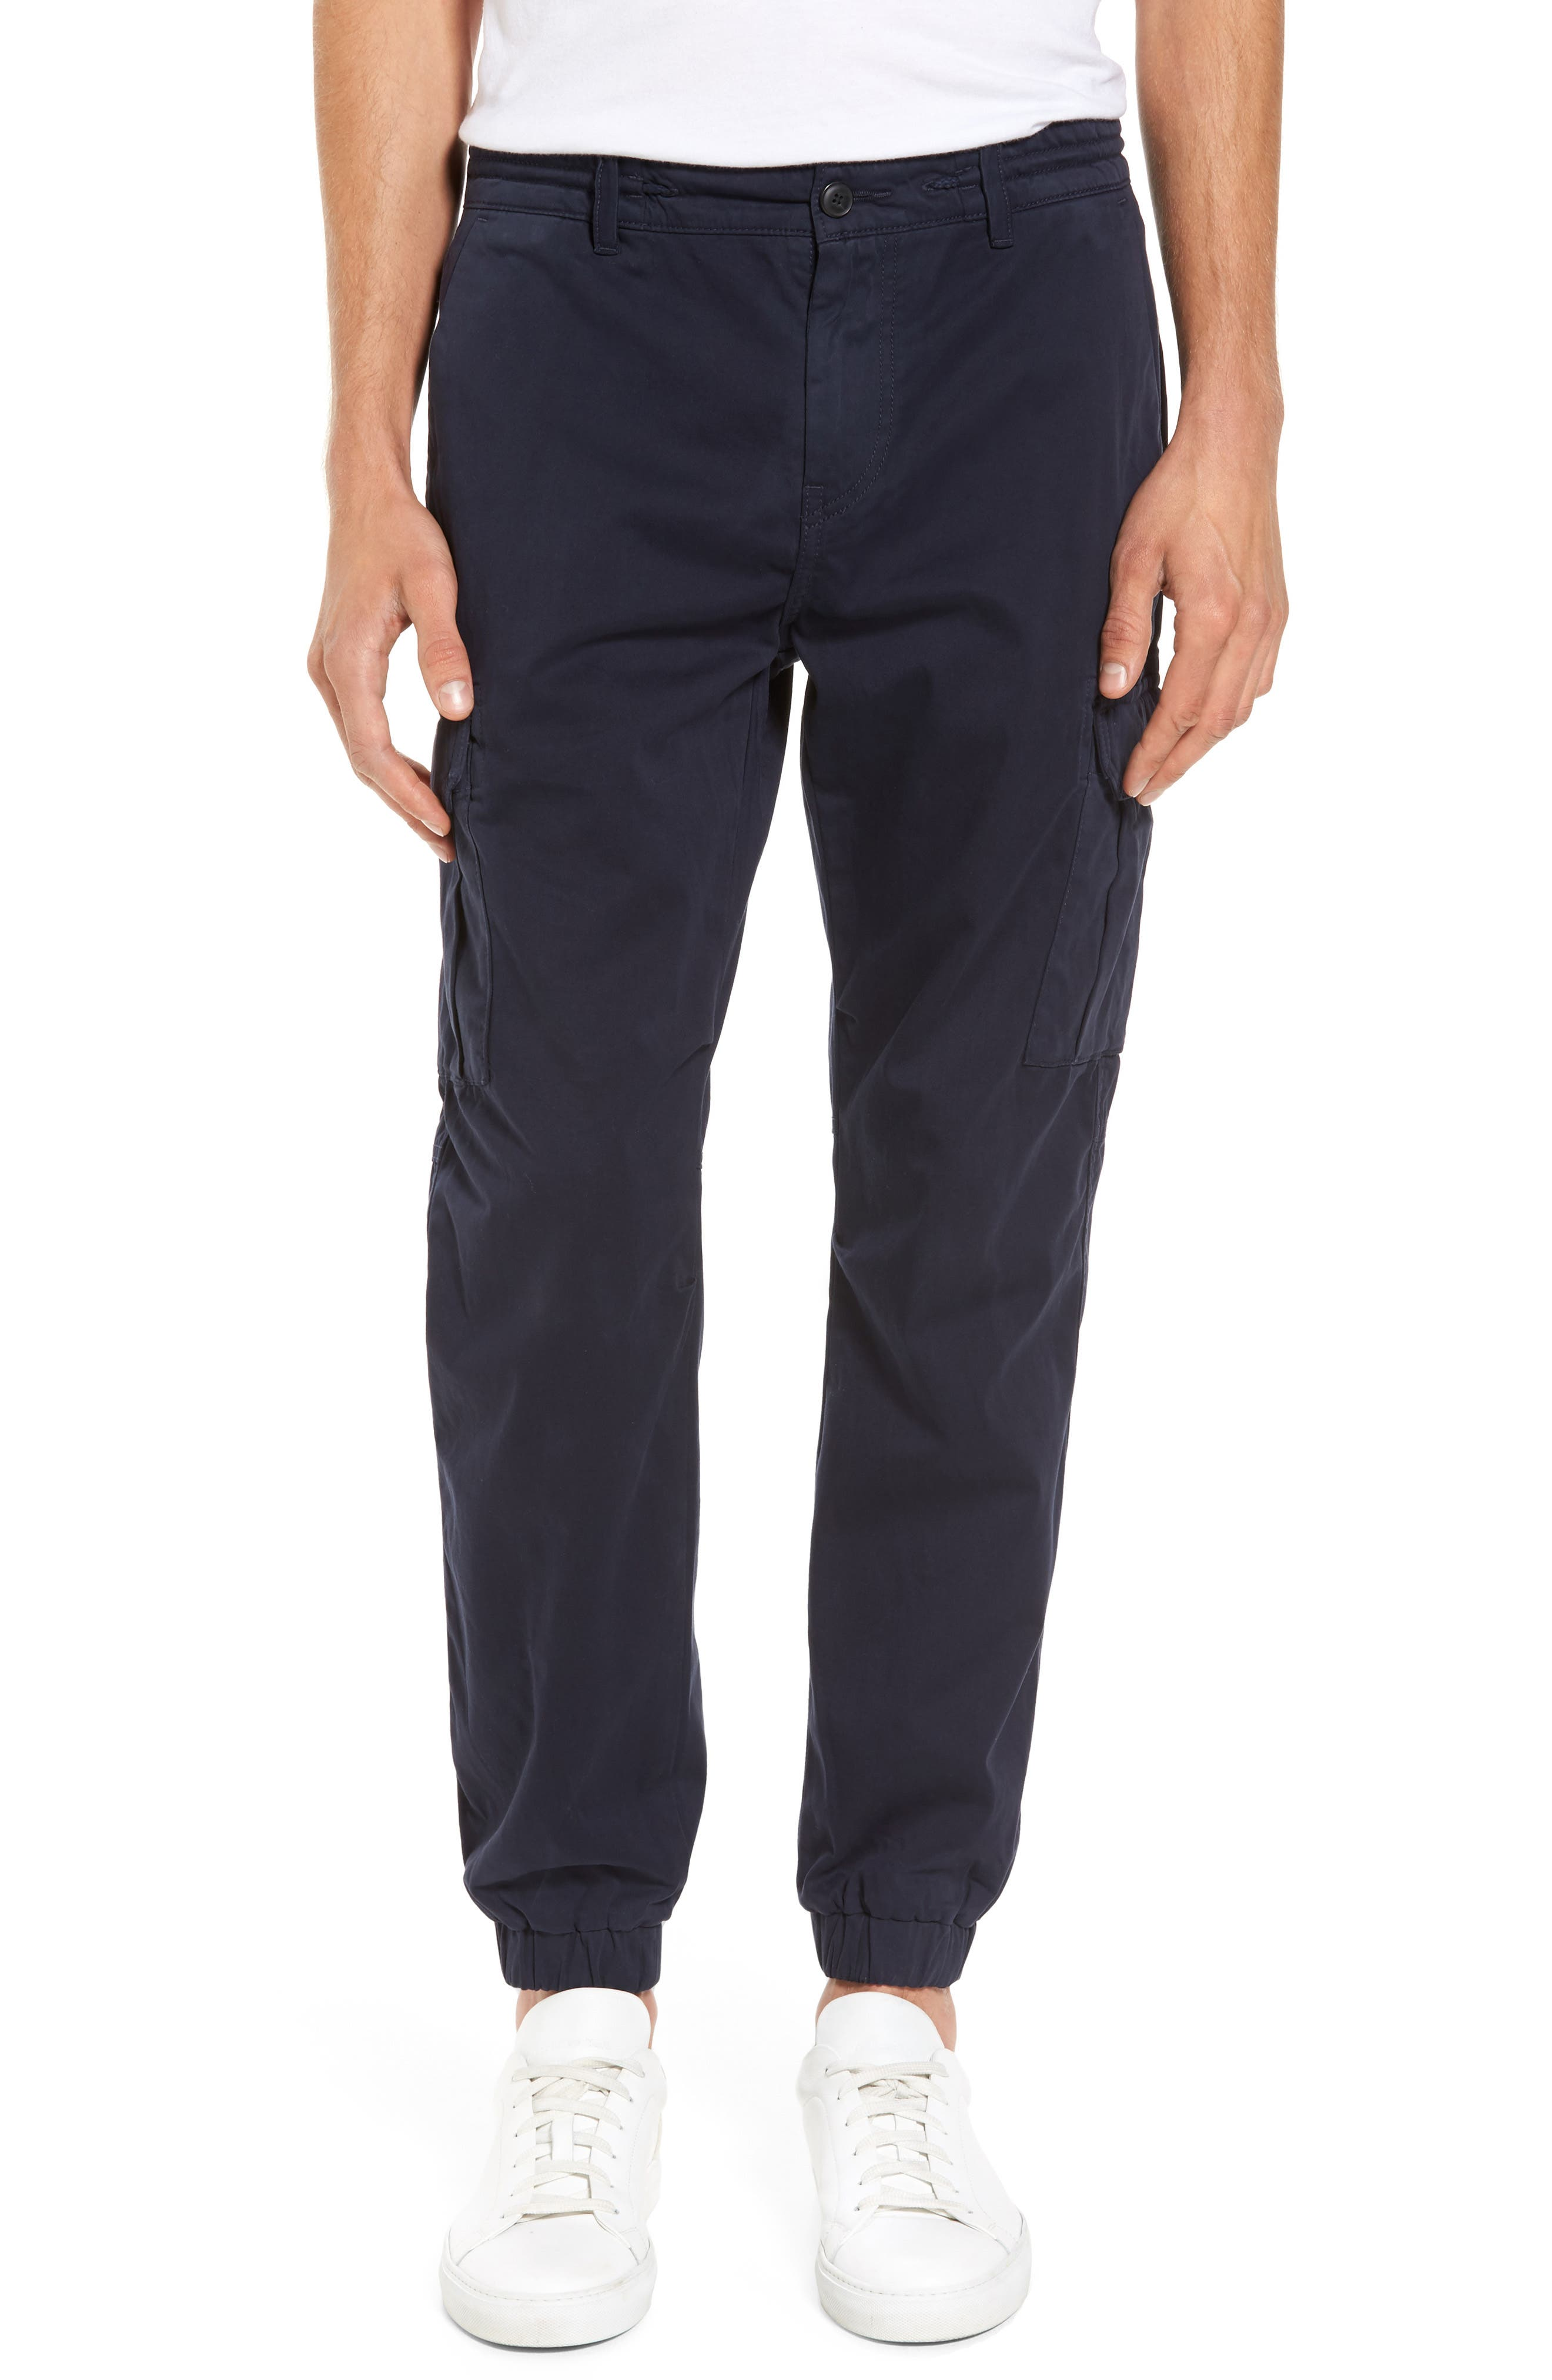 Shay 2 Cargo Pants,                             Main thumbnail 1, color,                             404